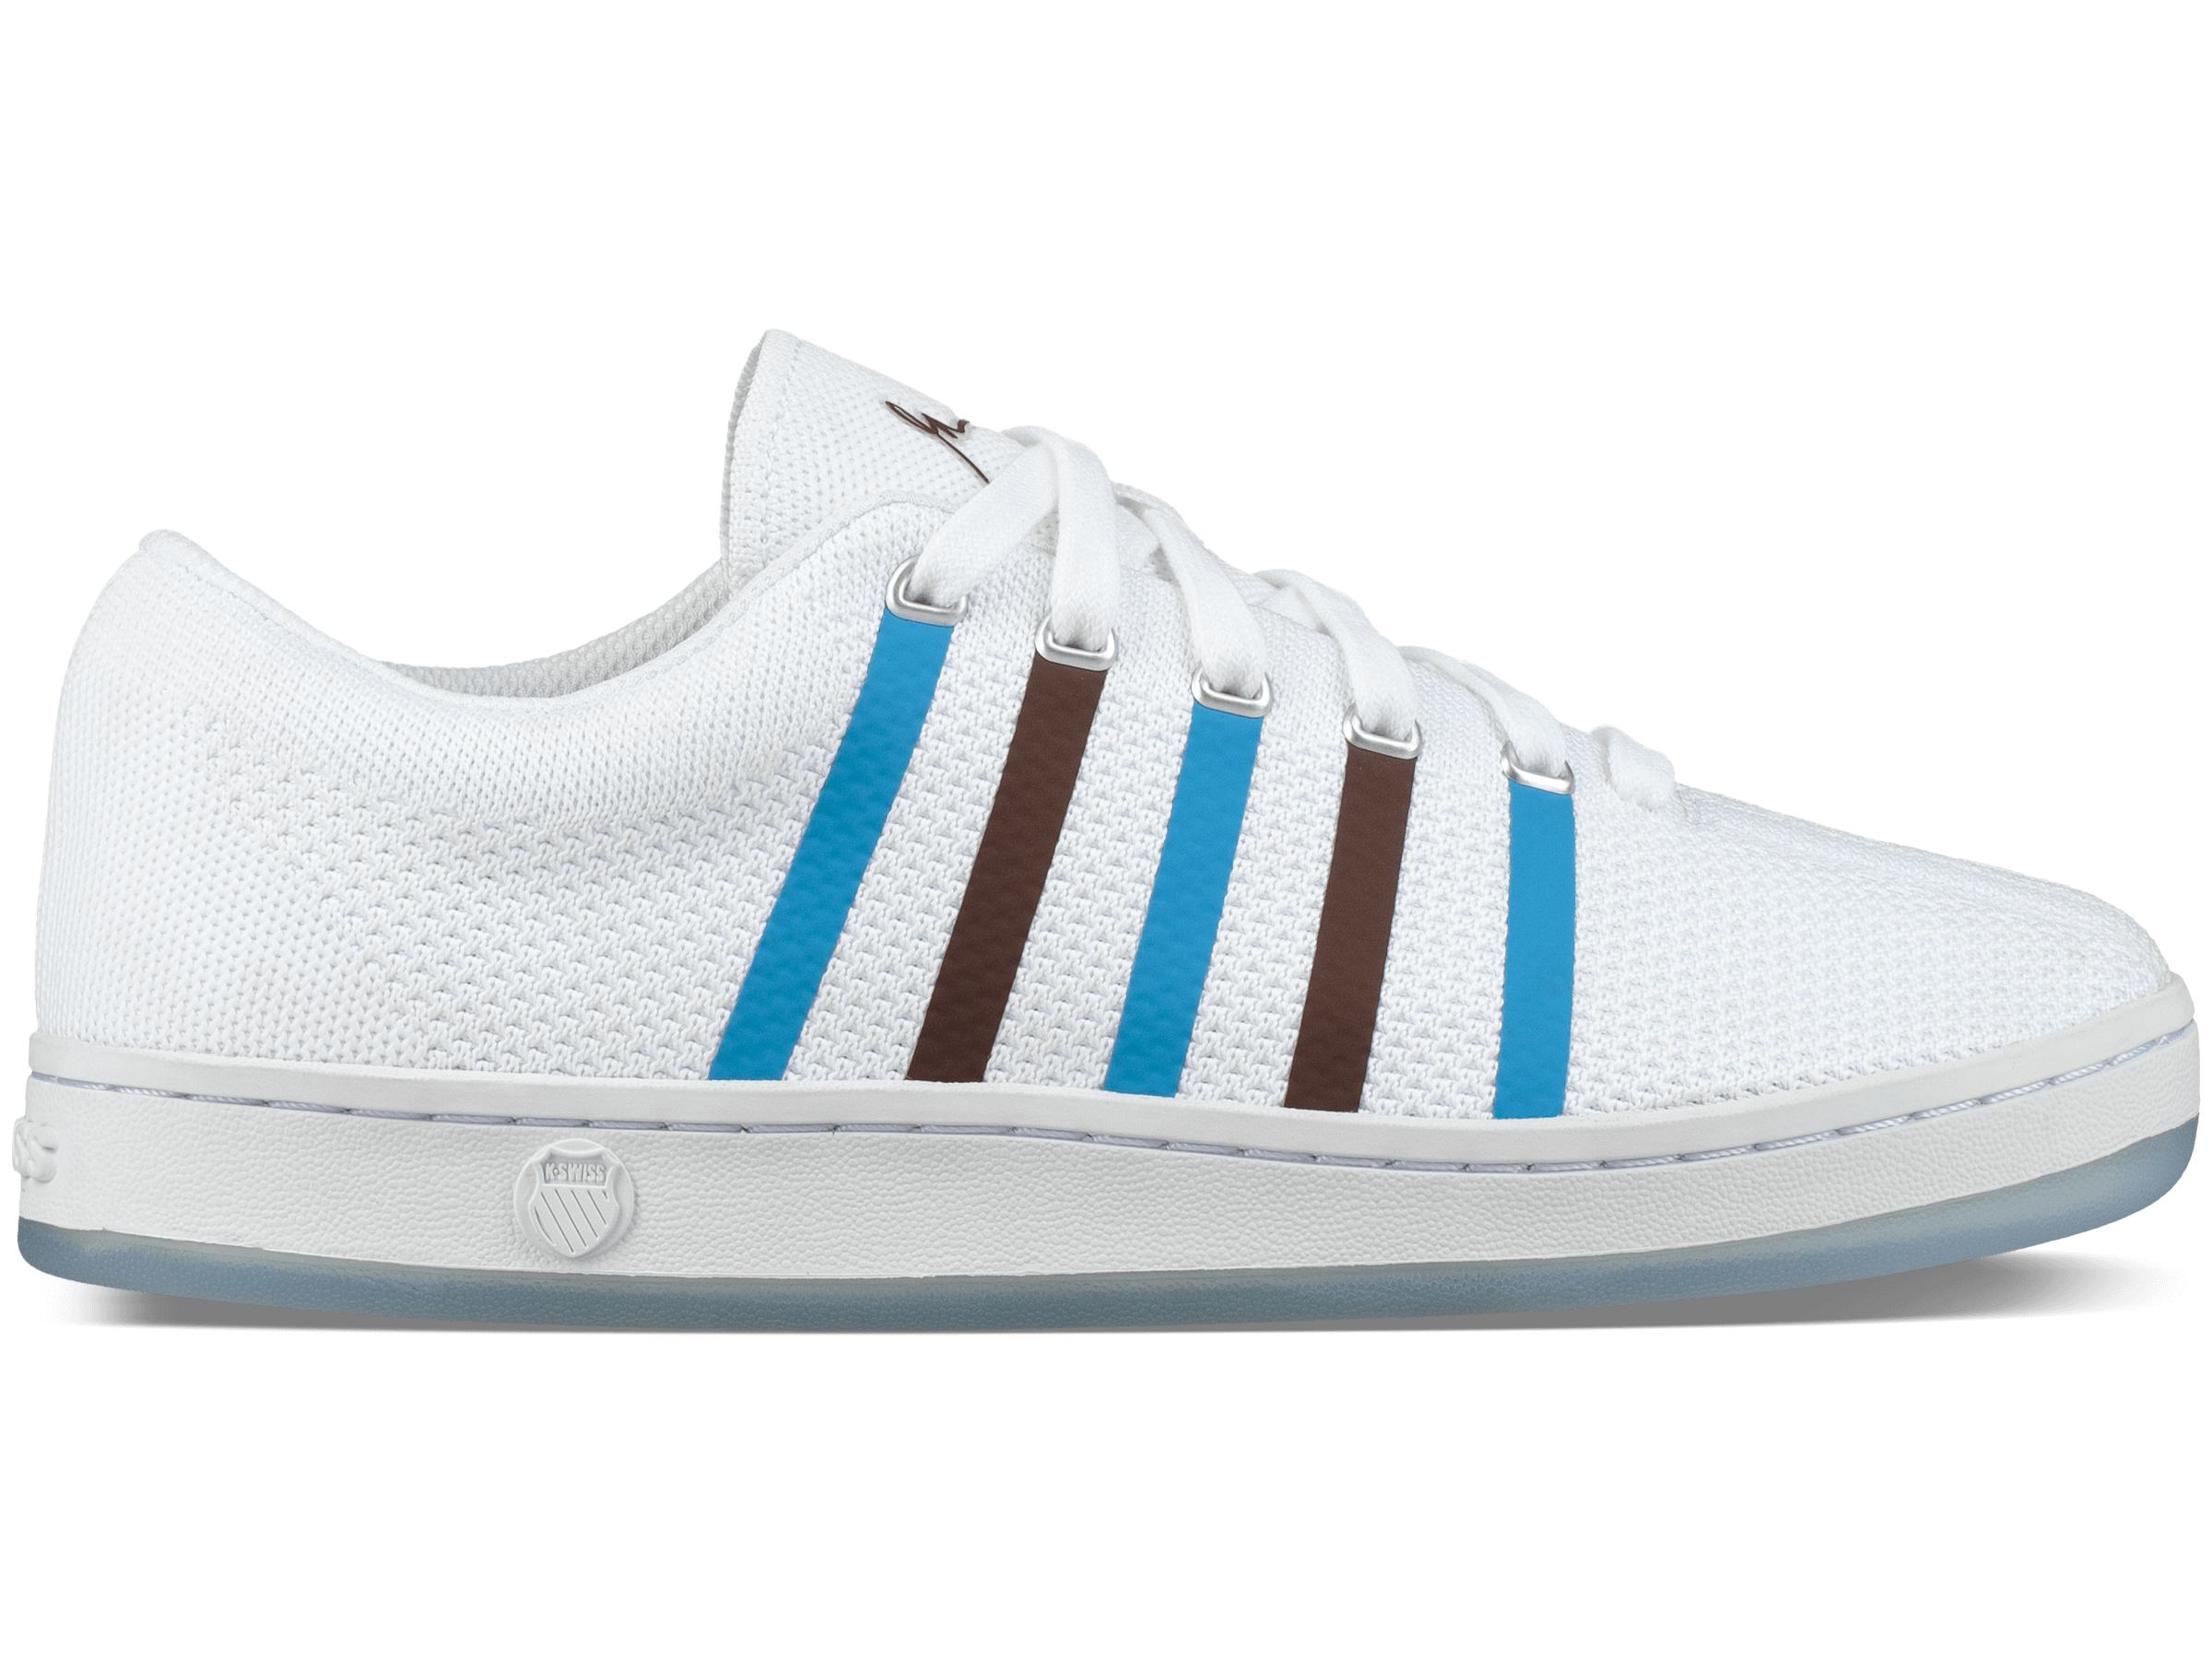 Where To Buy K Swiss Shoes